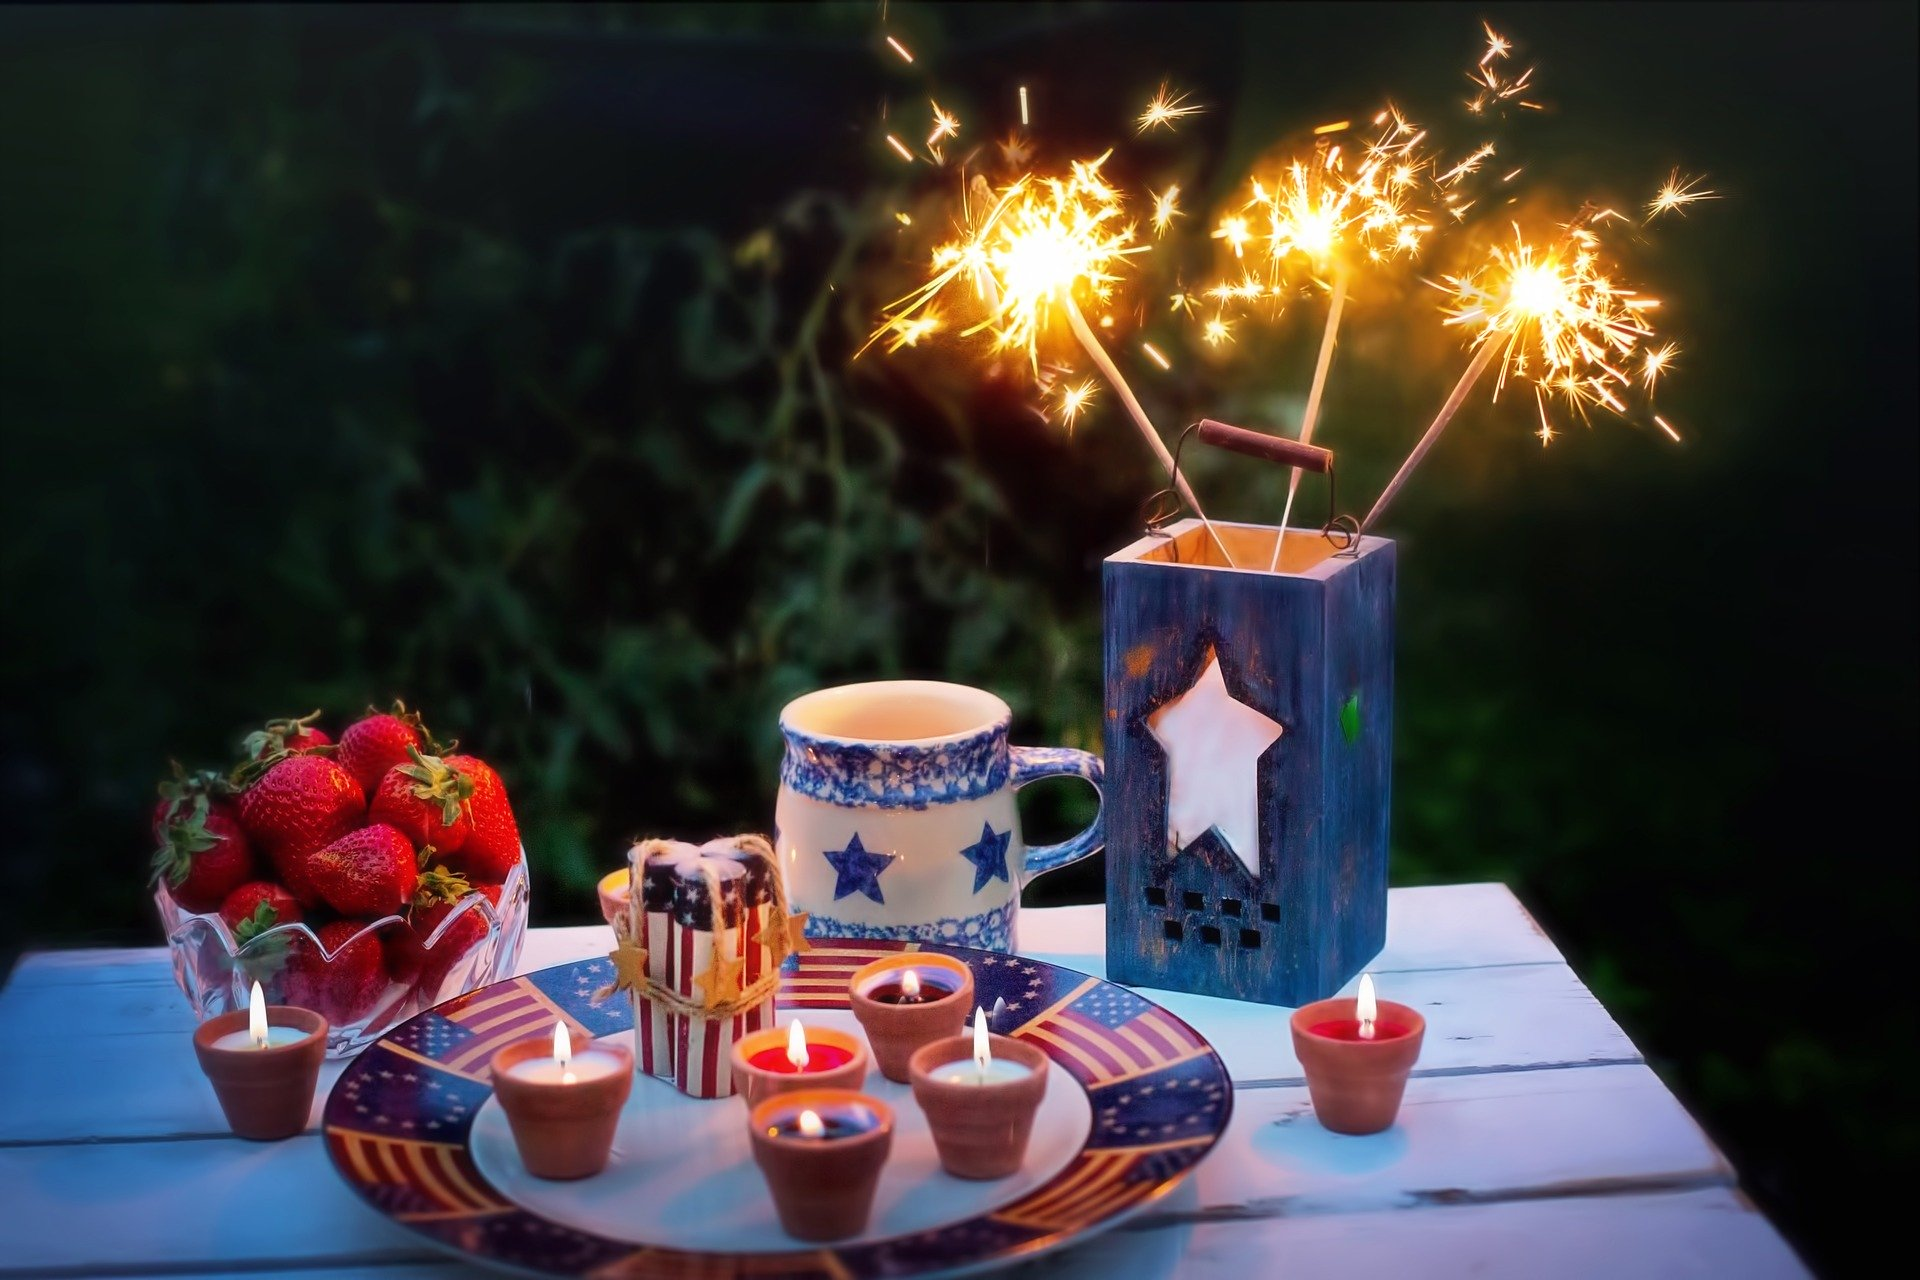 4 Tips for Celebrating the 4th of July During COVID-19